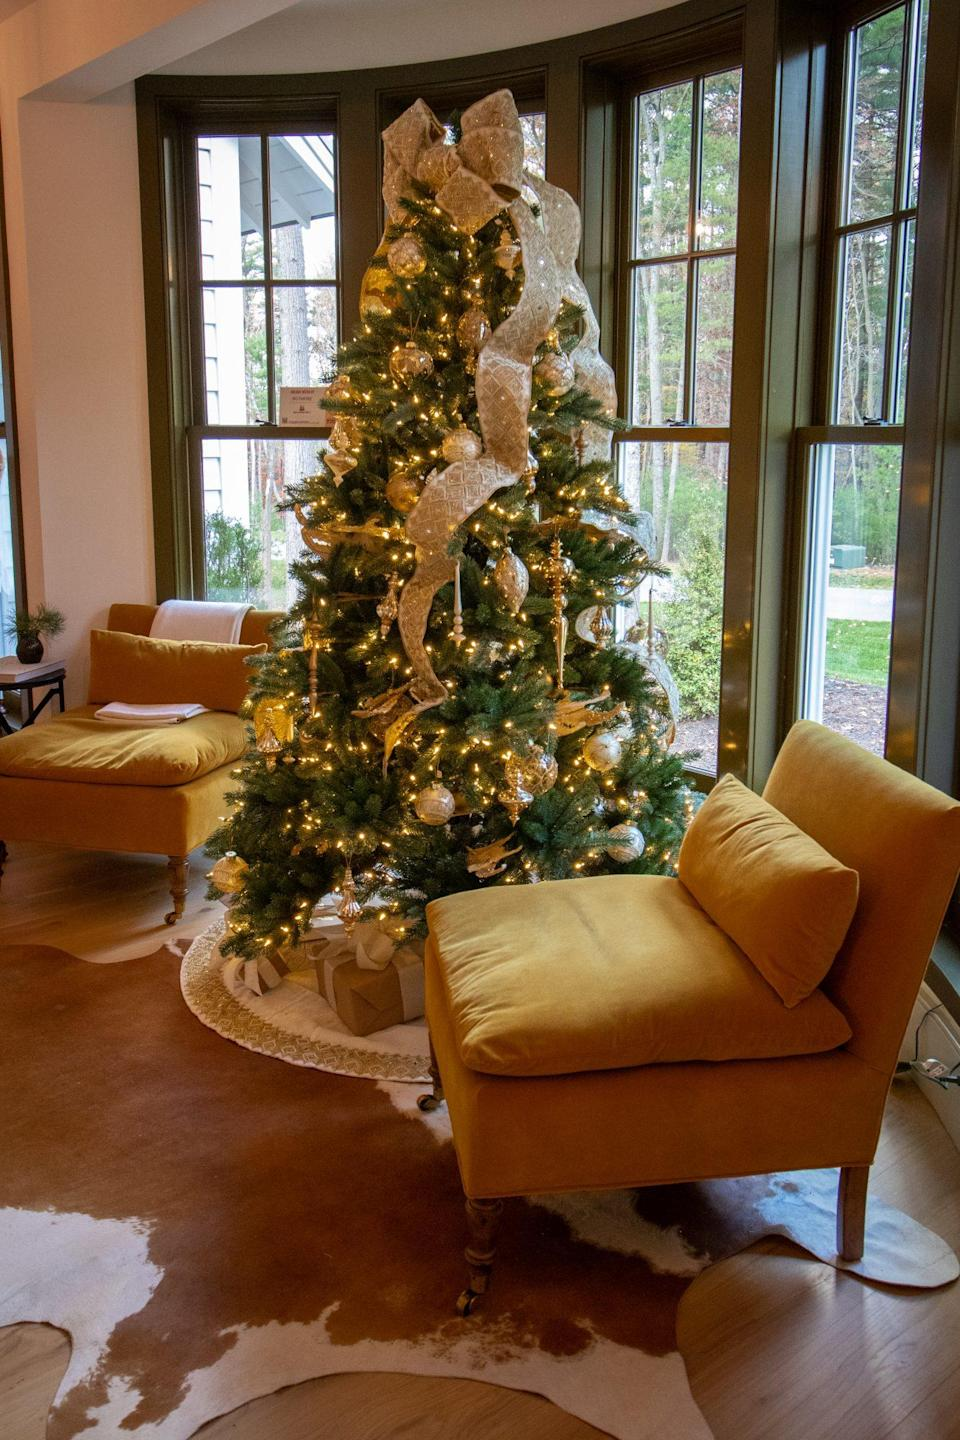 """<p>A Biltmore spruce from <a href=""""https://www.balsamhill.com/c/christmas-at-the-biltmore-decorating-theme"""" rel=""""nofollow noopener"""" target=""""_blank"""" data-ylk=""""slk:Balsam Hill"""" class=""""link rapid-noclick-resp"""">Balsam Hill</a> twinkles in the bay window of the sitting room. Metallic ornaments from the <a href=""""https://www.balsamhill.com/p/biltmore-legacy-ornament-set?sku=4002553"""" rel=""""nofollow noopener"""" target=""""_blank"""" data-ylk=""""slk:Biltmore Legacy Ornament Set"""" class=""""link rapid-noclick-resp"""">Biltmore Legacy Ornament Set</a> and a sparkly ribbon cascading from the top help the tree really shine. </p>"""